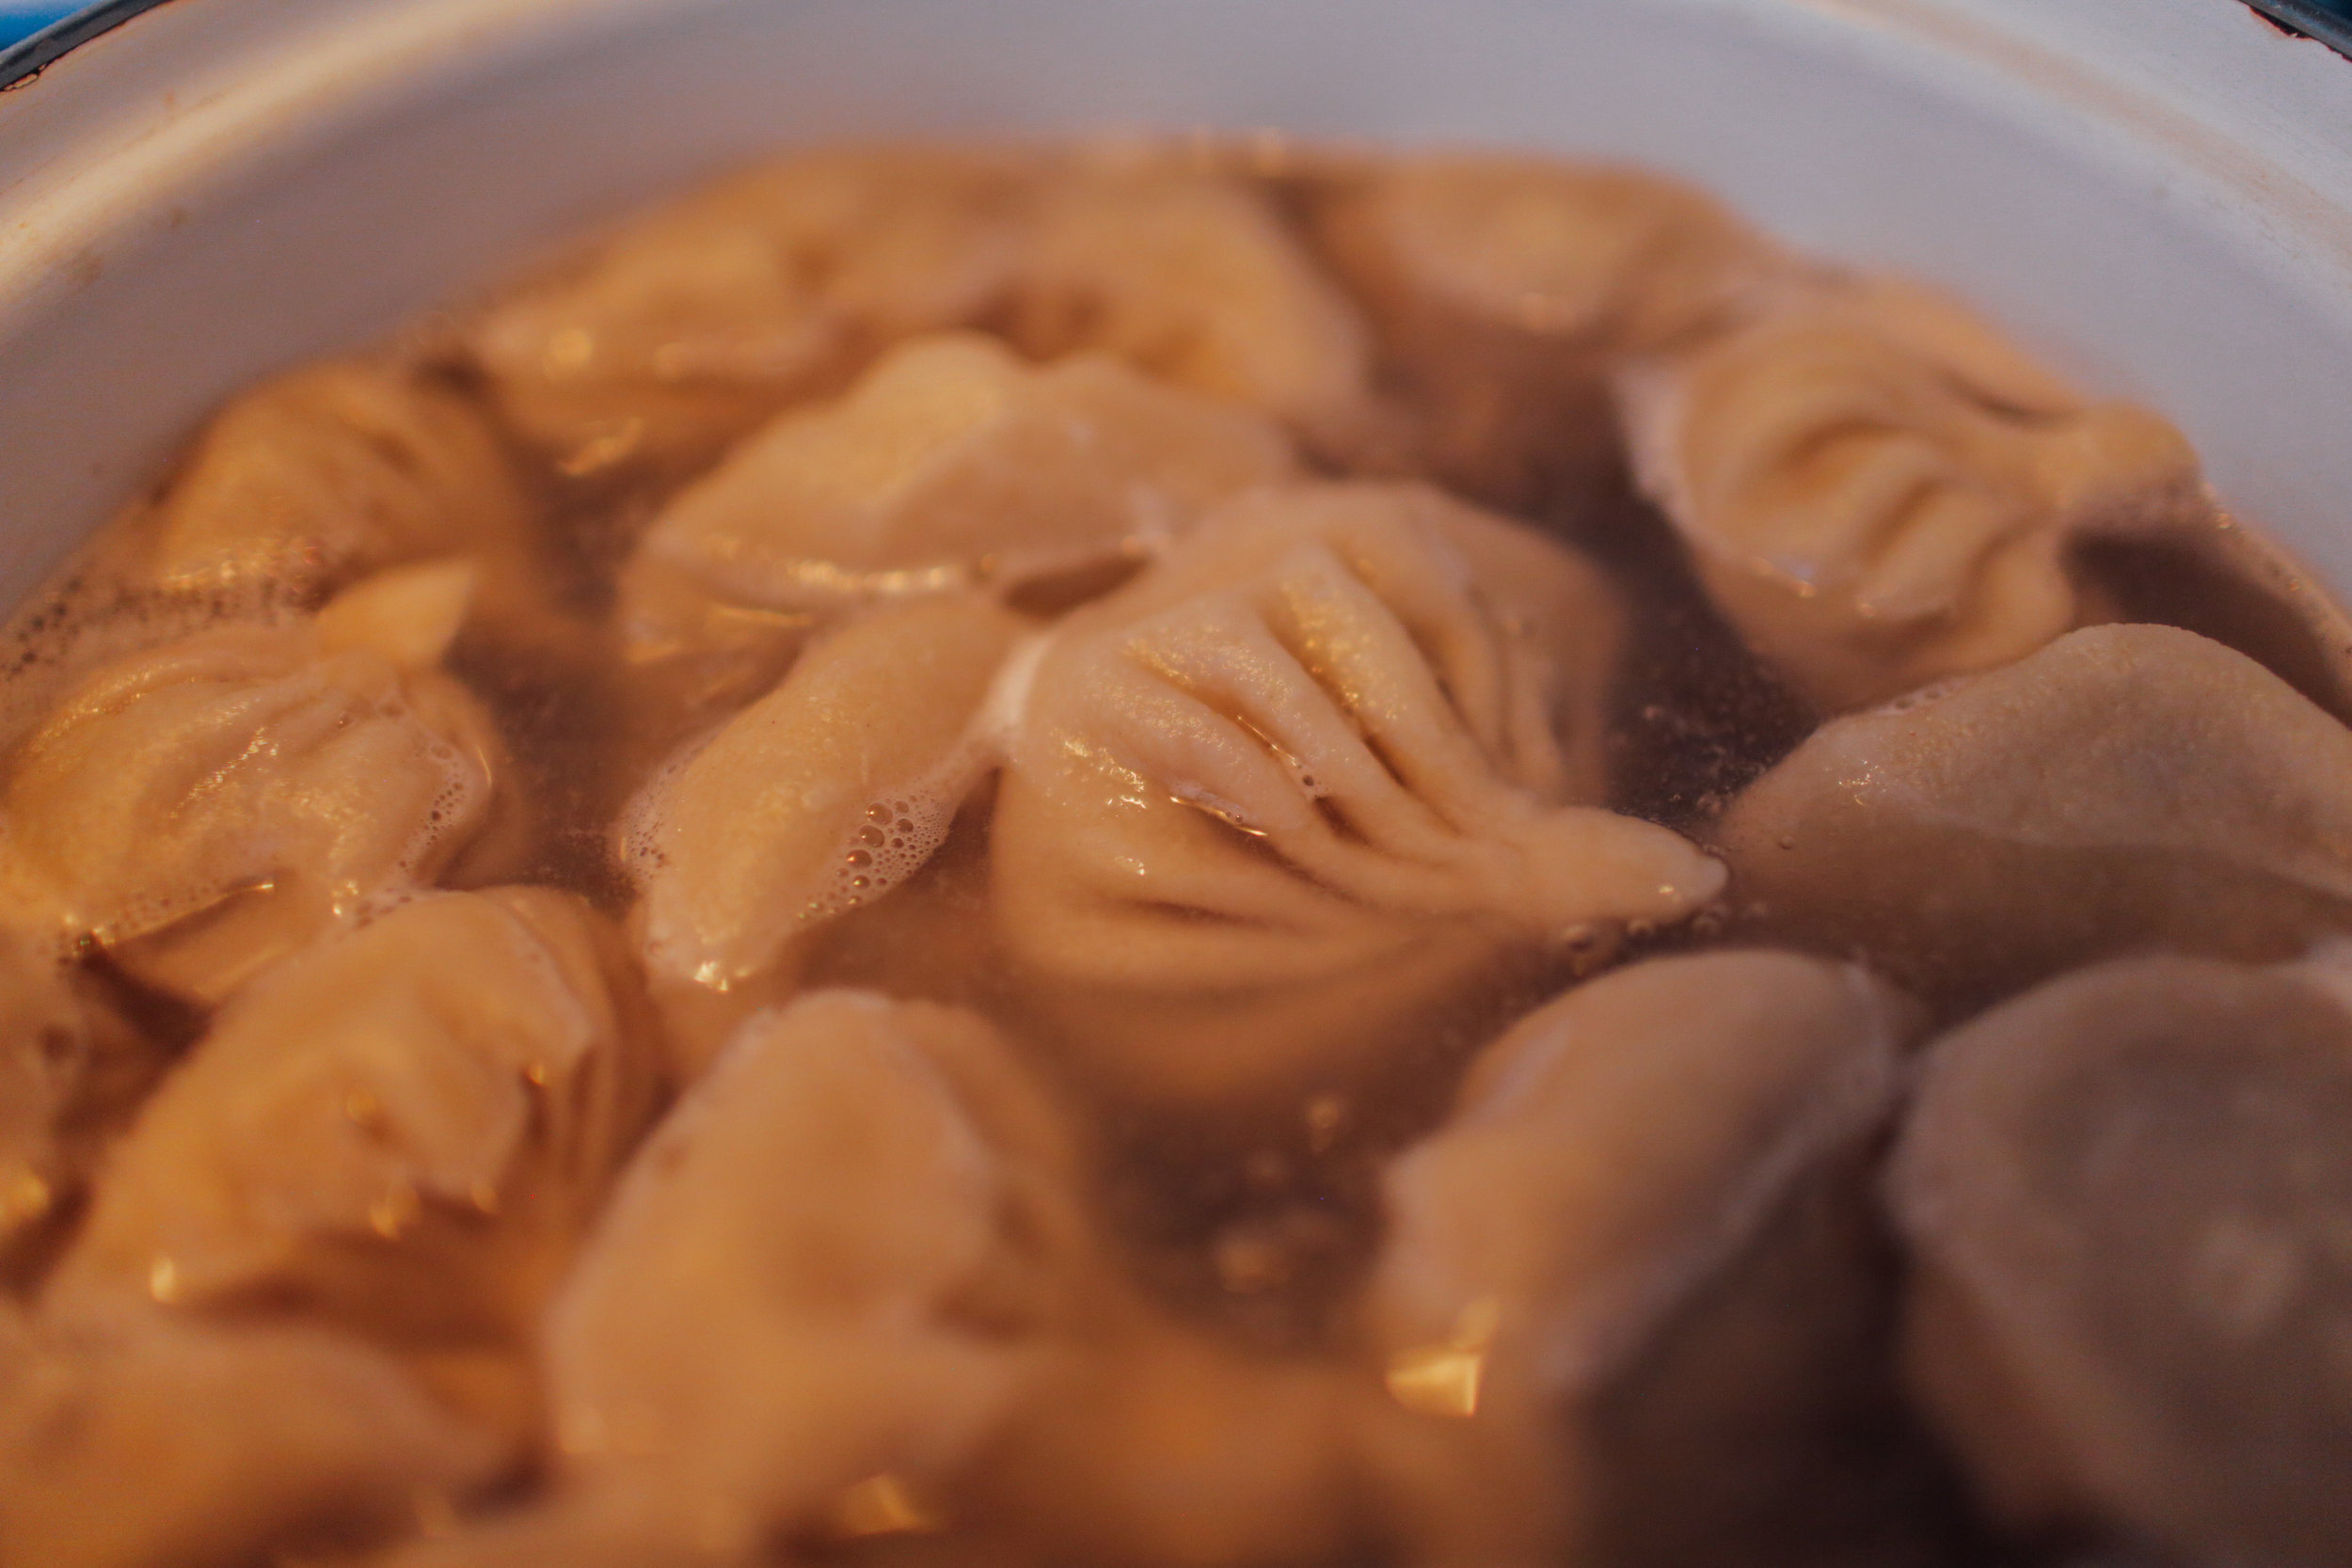 19. Add dumplings to boiling water, bring to a simmer again, and cook for 10-12 minutes.